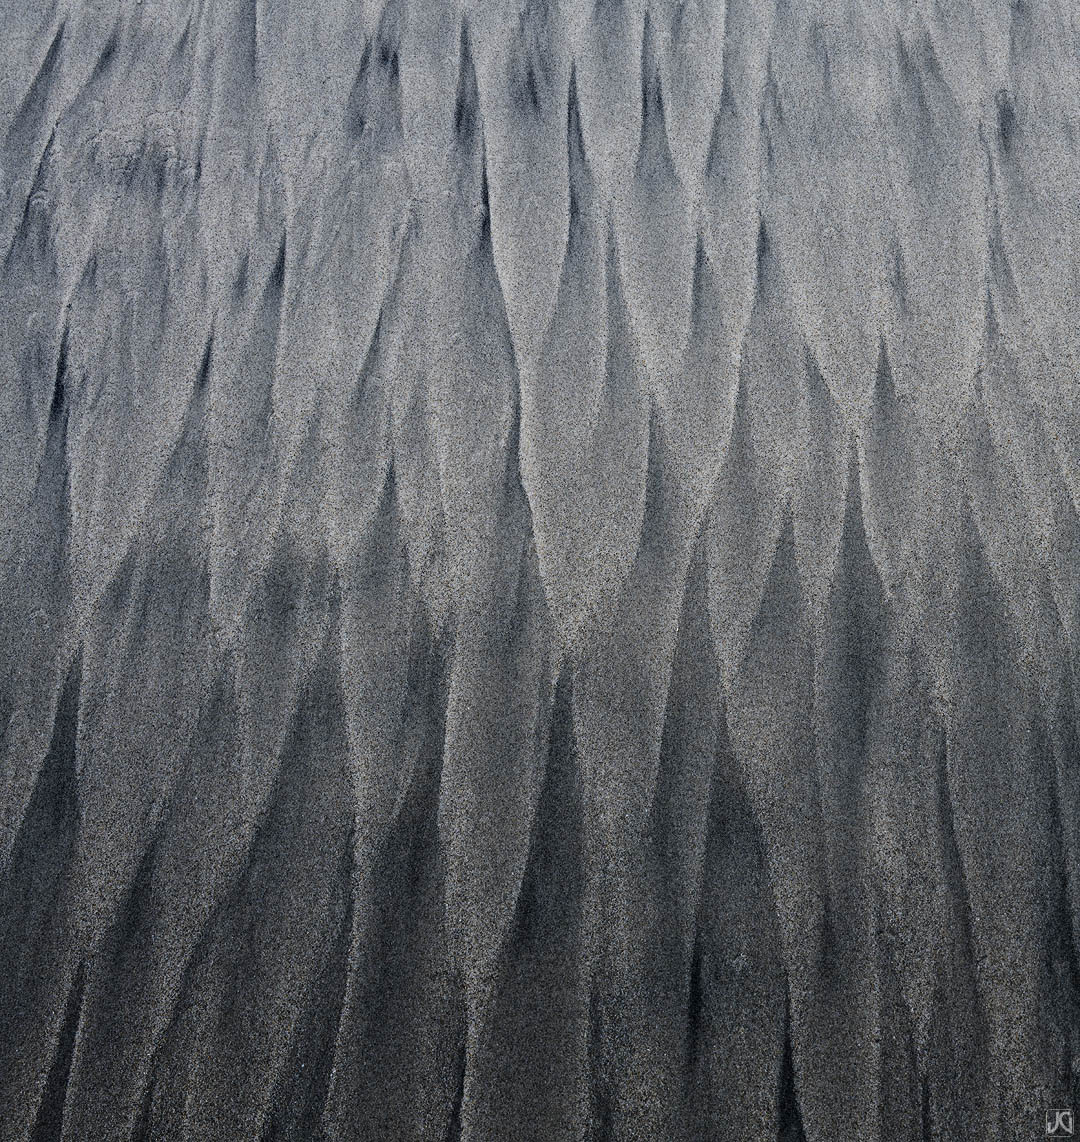 California, sand, beach, sea, patterns, photo